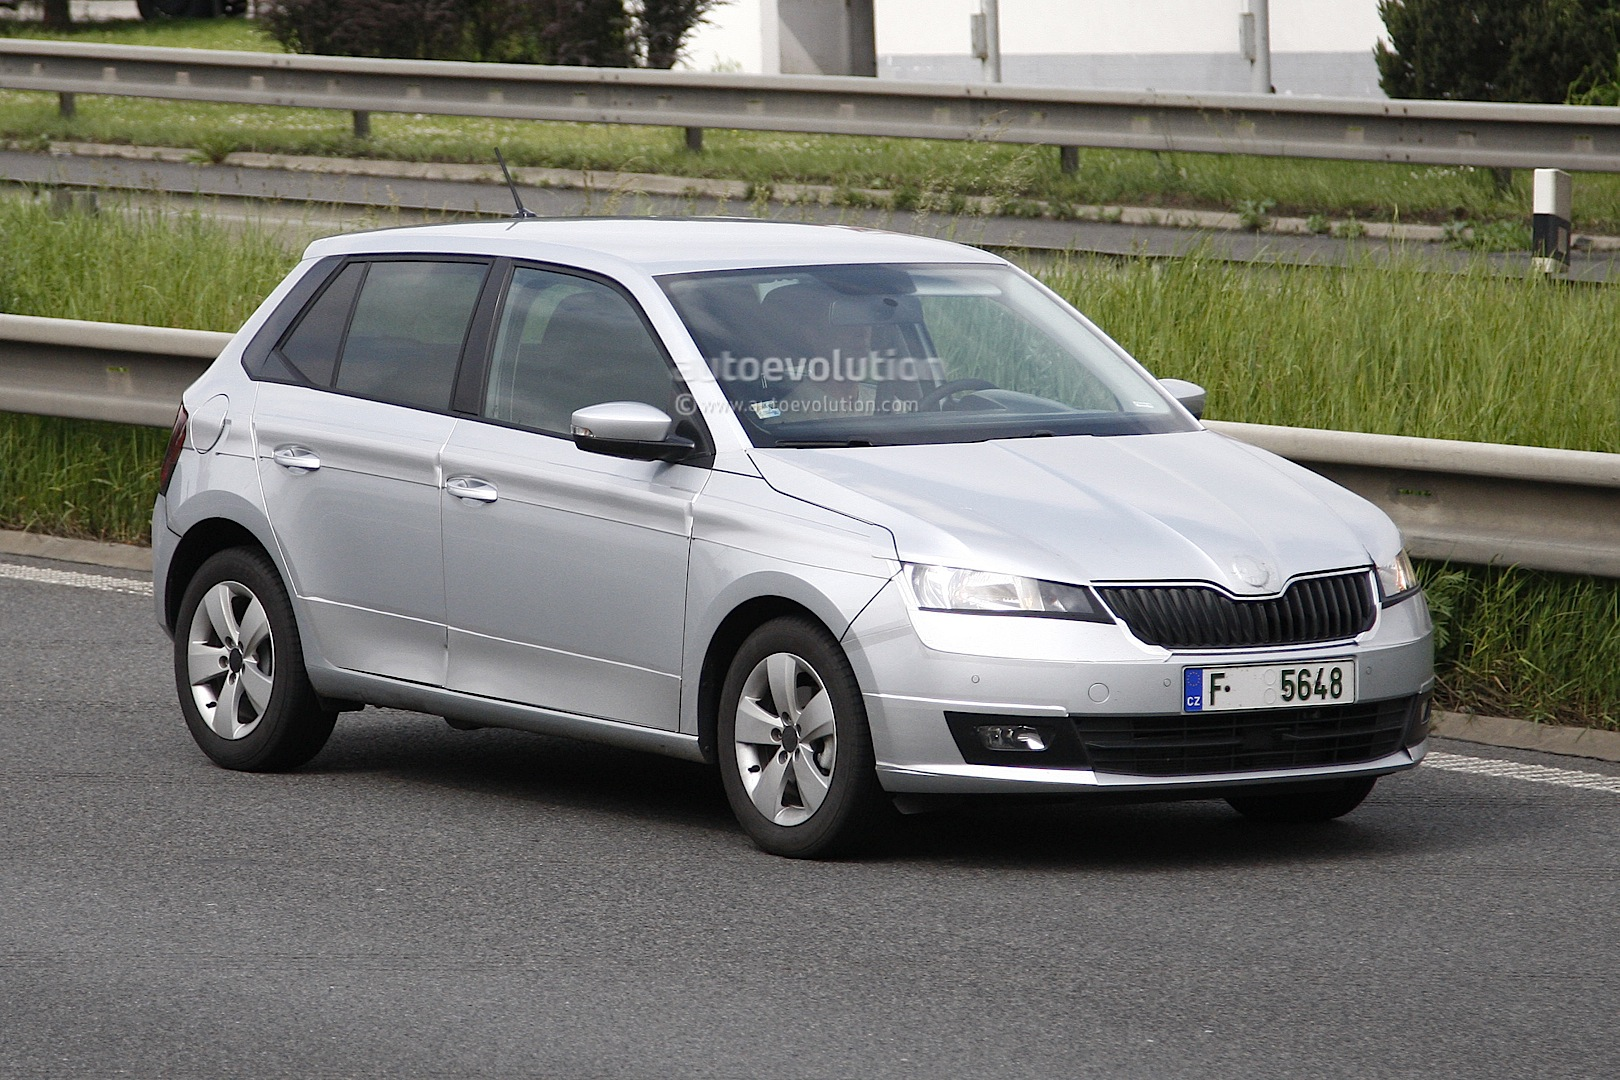 new agya 1.2 trd silver interior yaris 2018 all 2014 skoda fabia spotted almost undisguised